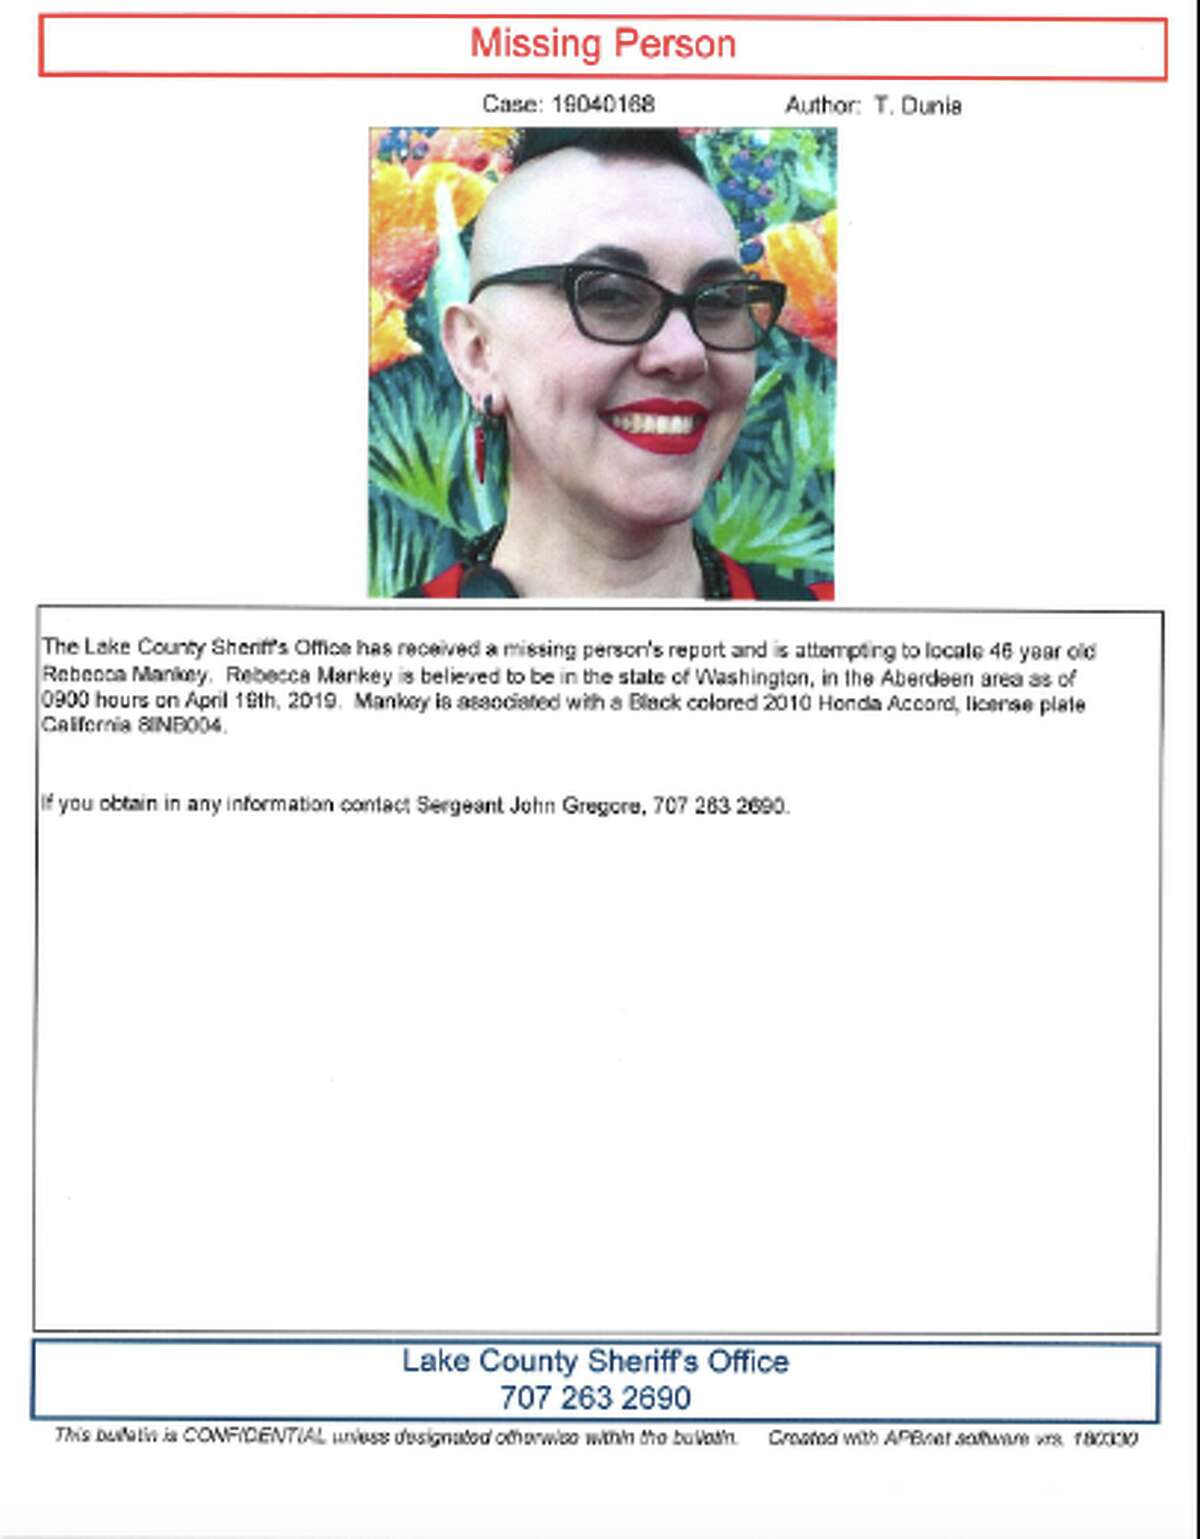 Rebecca Parker Mankey, the woman who confronted and harassed a man wearing a MAGA hat inside of a Palo Alto Starbucks, is missing.